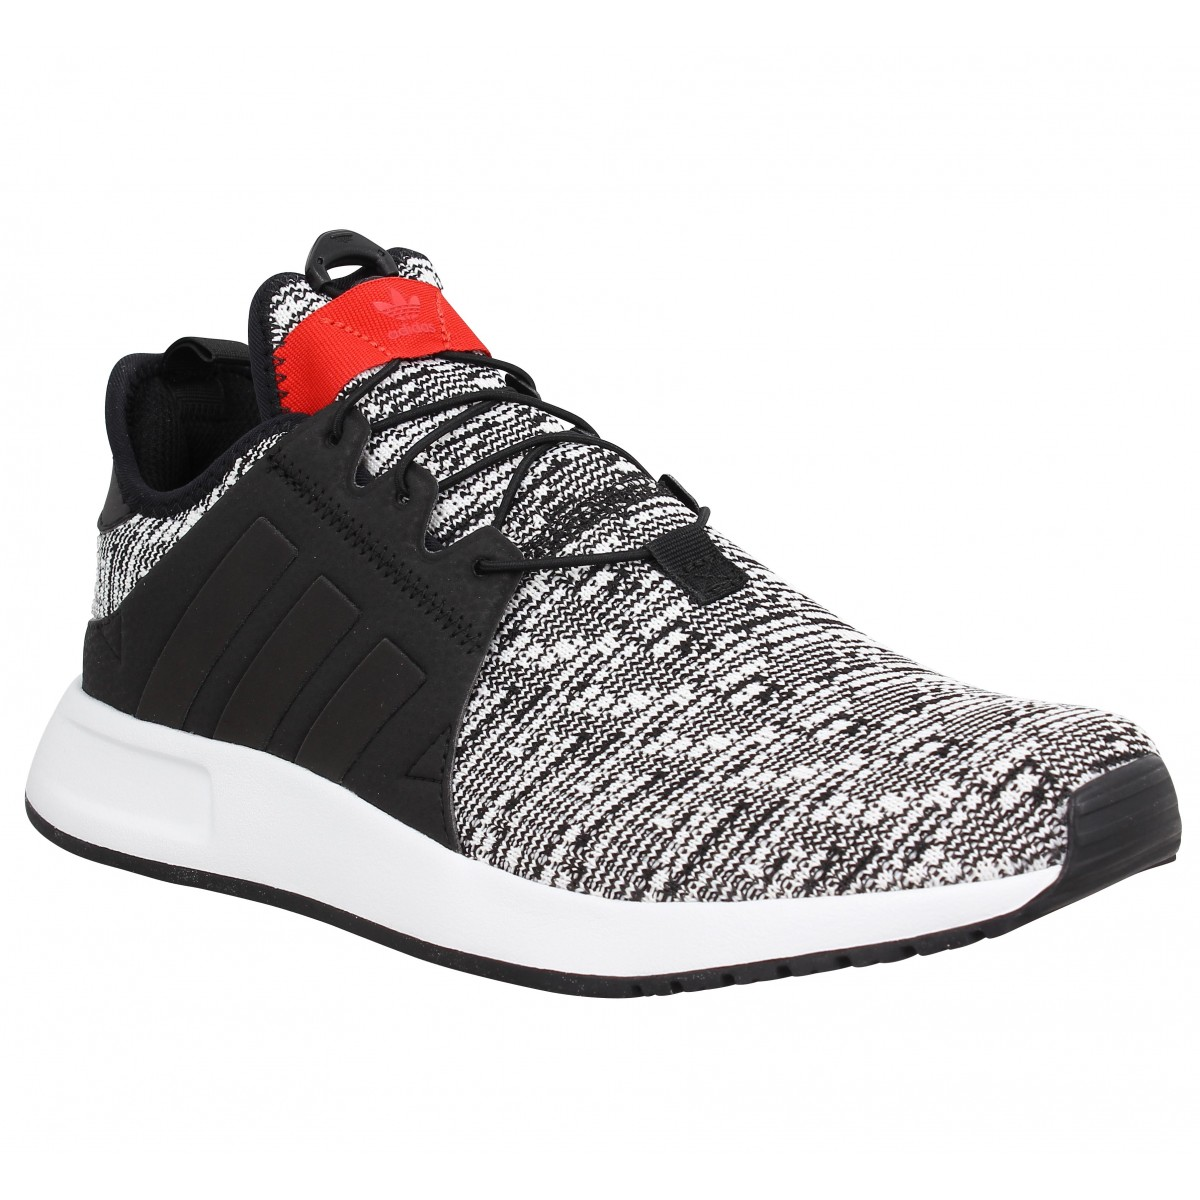 Baskets ADIDAS X PLR toile Homme Black